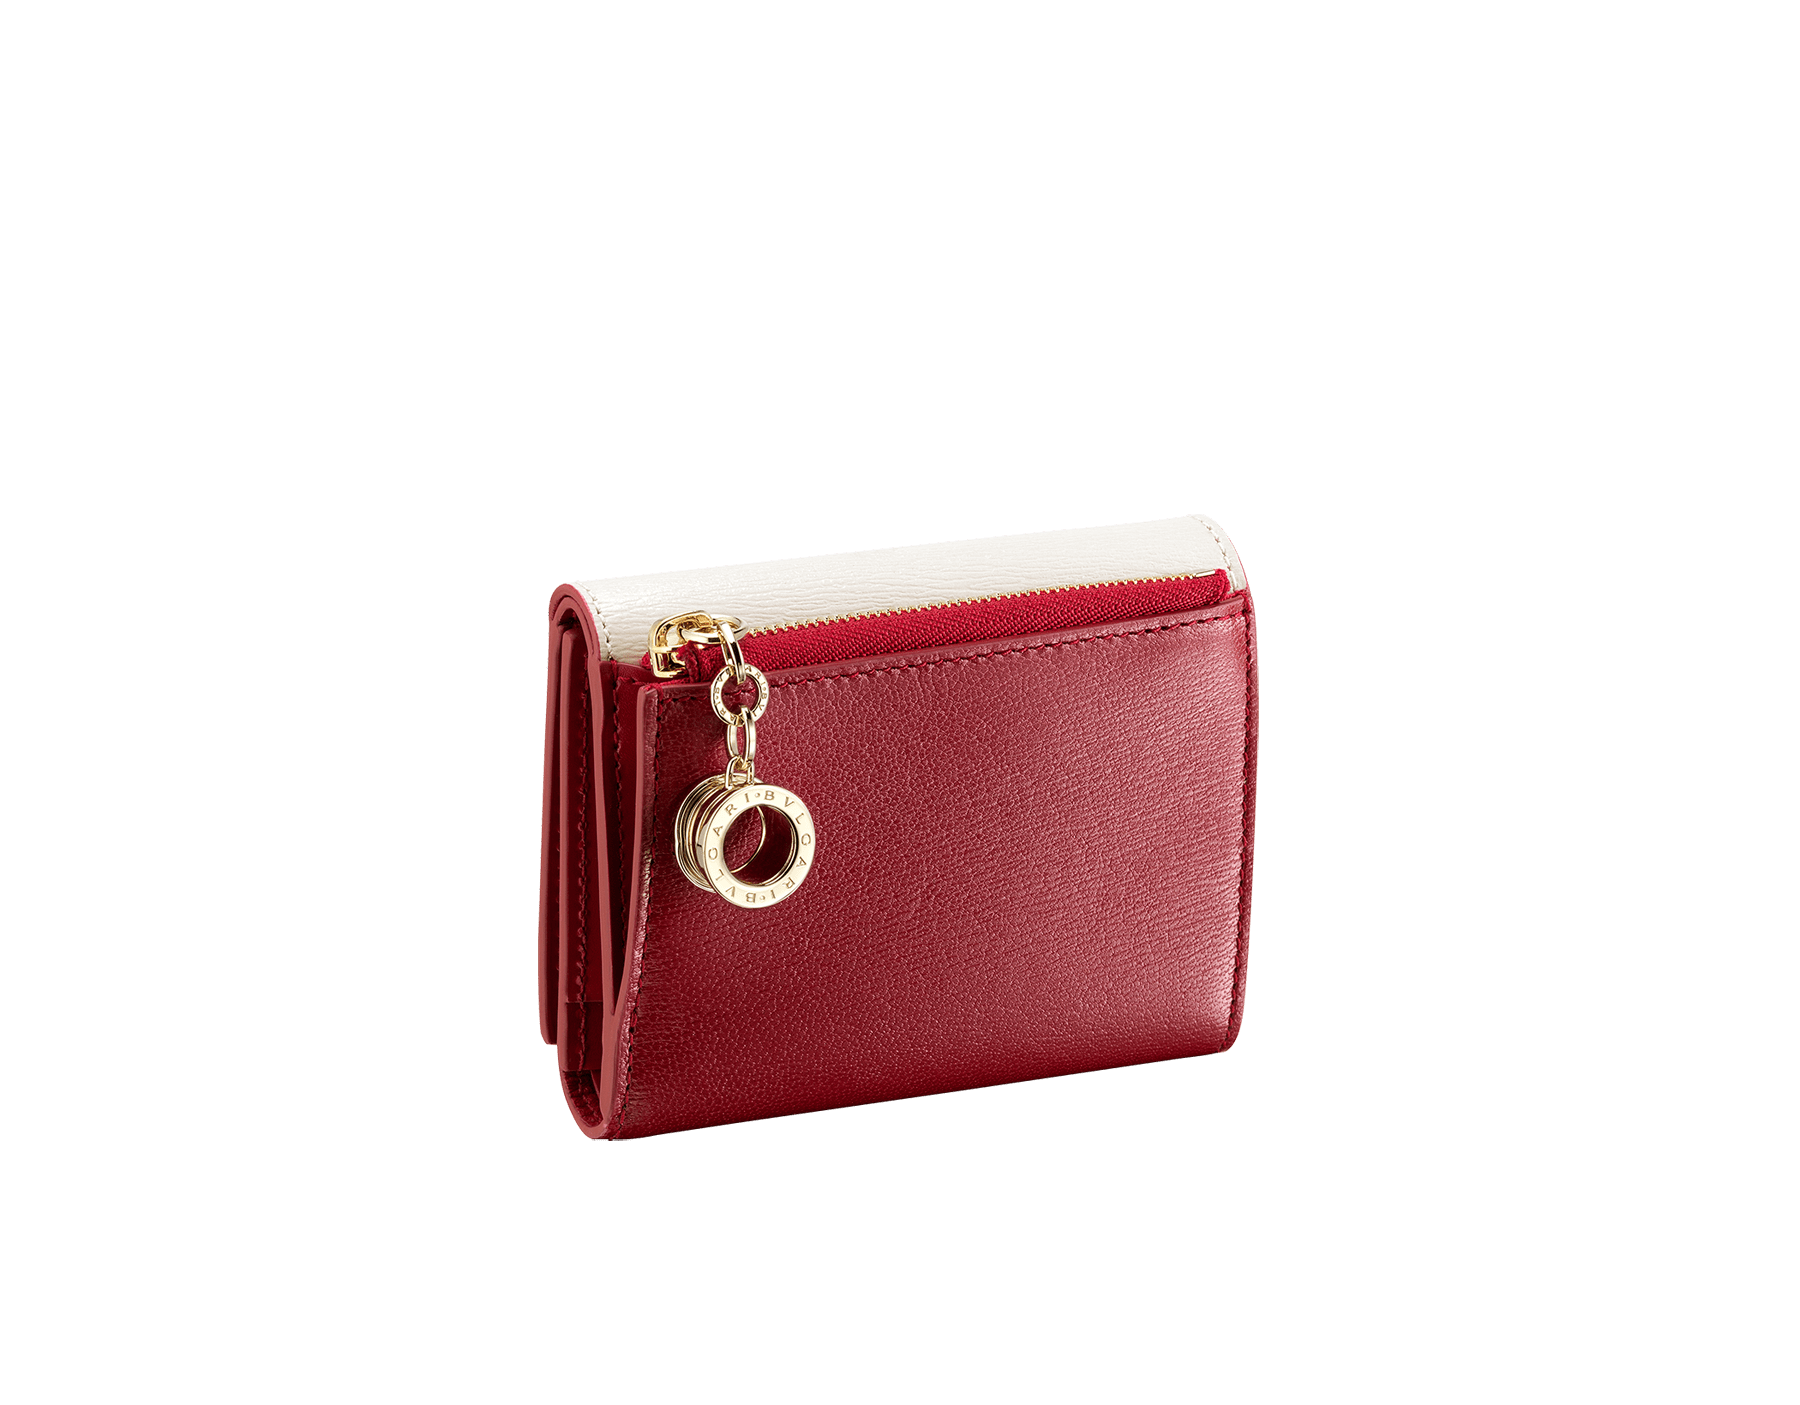 """B.zero1"" compact wallet in white agate and ruby red goatskin and ruby red calf leather. Iconic B.zero1 zipper in light gold plated brass and two press-stud closures. BZA-SLIMCOMPACTa image 3"